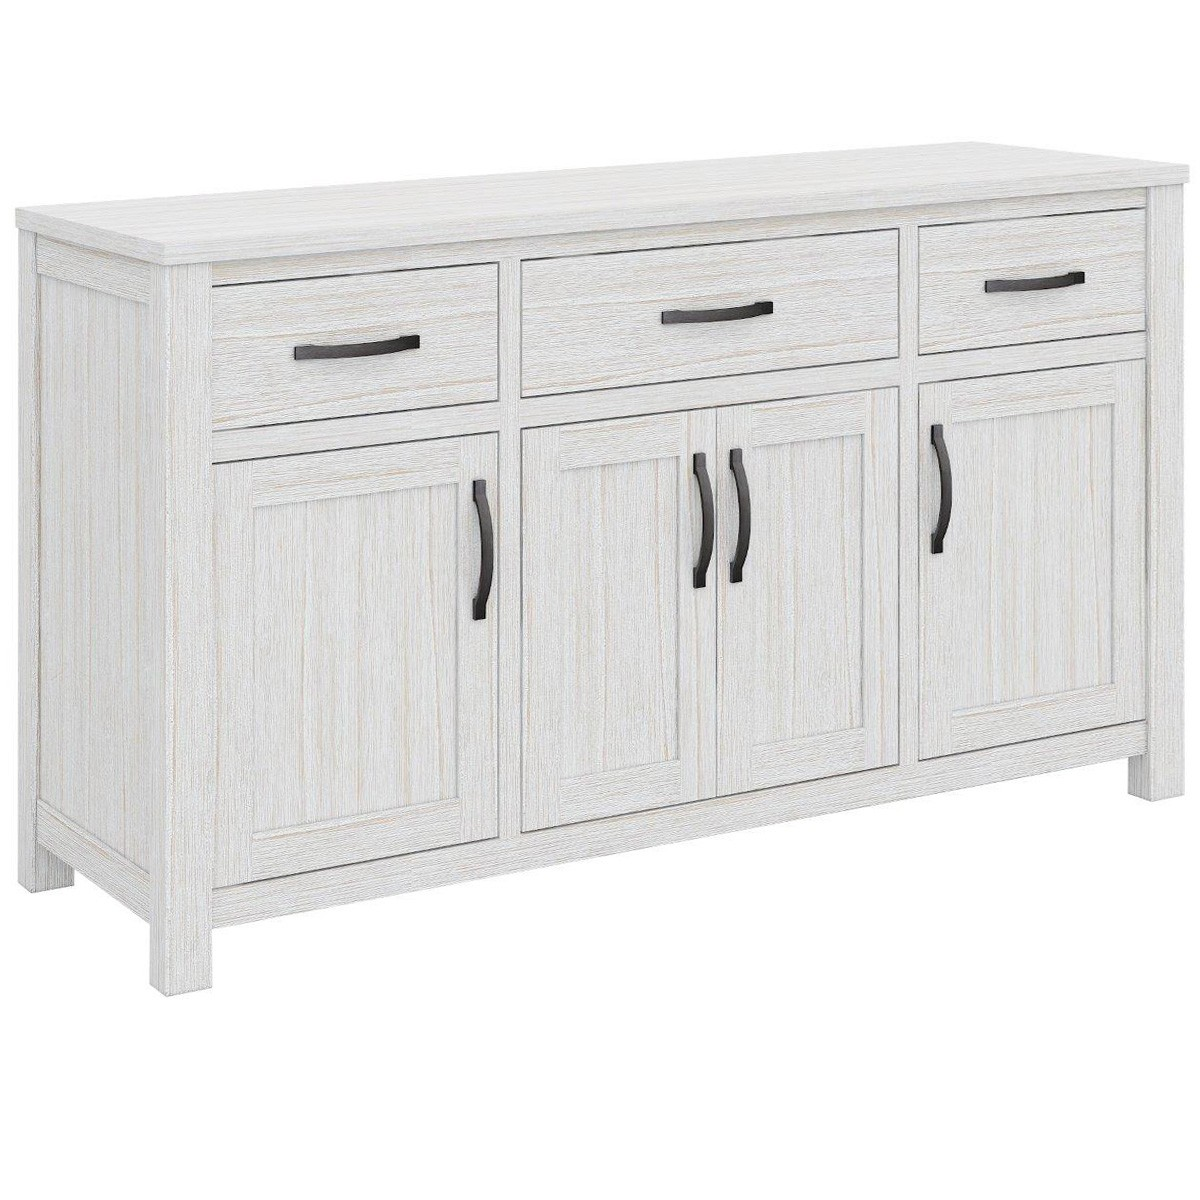 Lakeland Mountain Ash Timber 4 Door 3 Drawer Buffet Table, 158cm